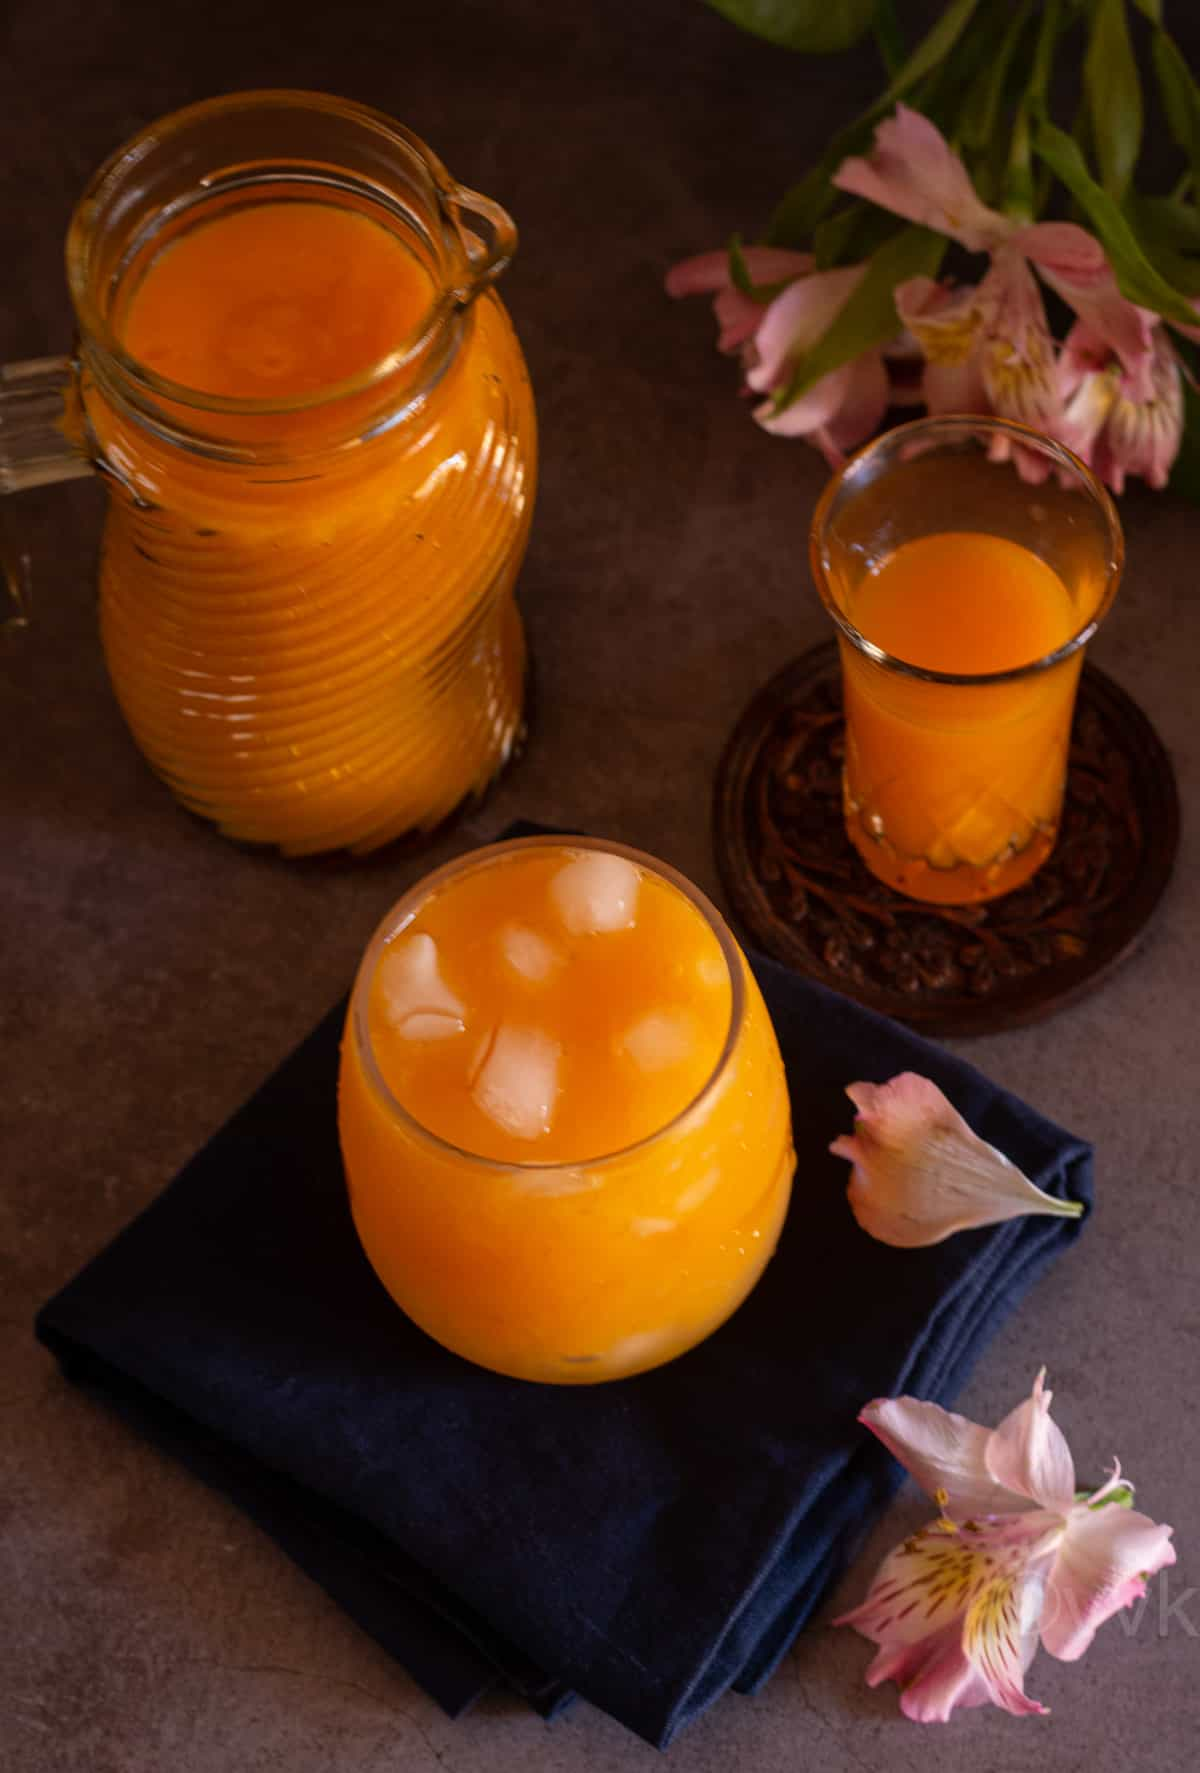 overhead angled shot of mango nectar with ice in a tall glass placed on blue napkin